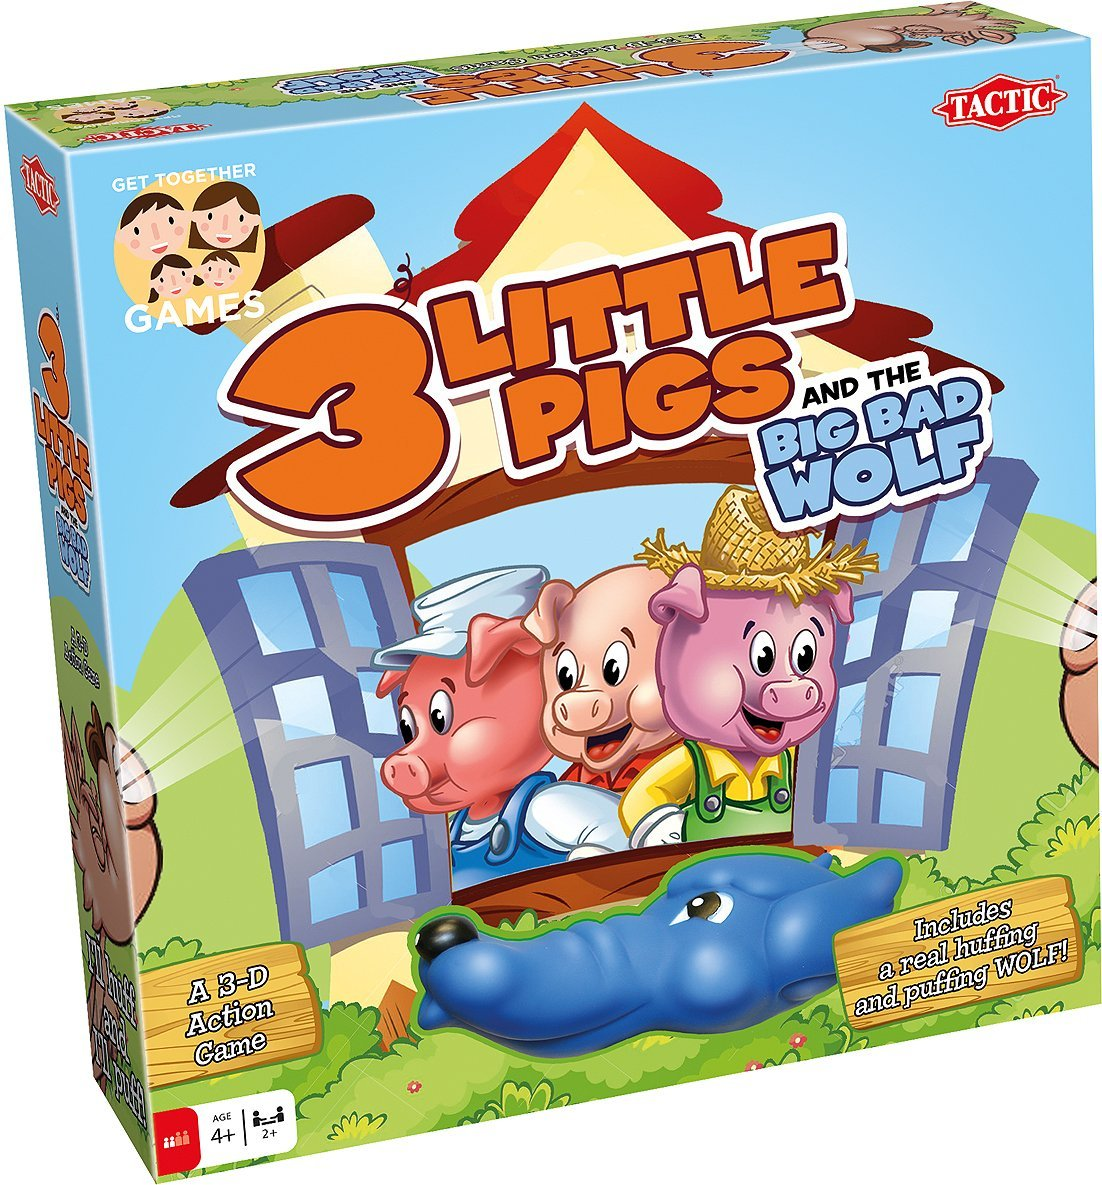 3 Little Pigs And The Big Bad Wolf